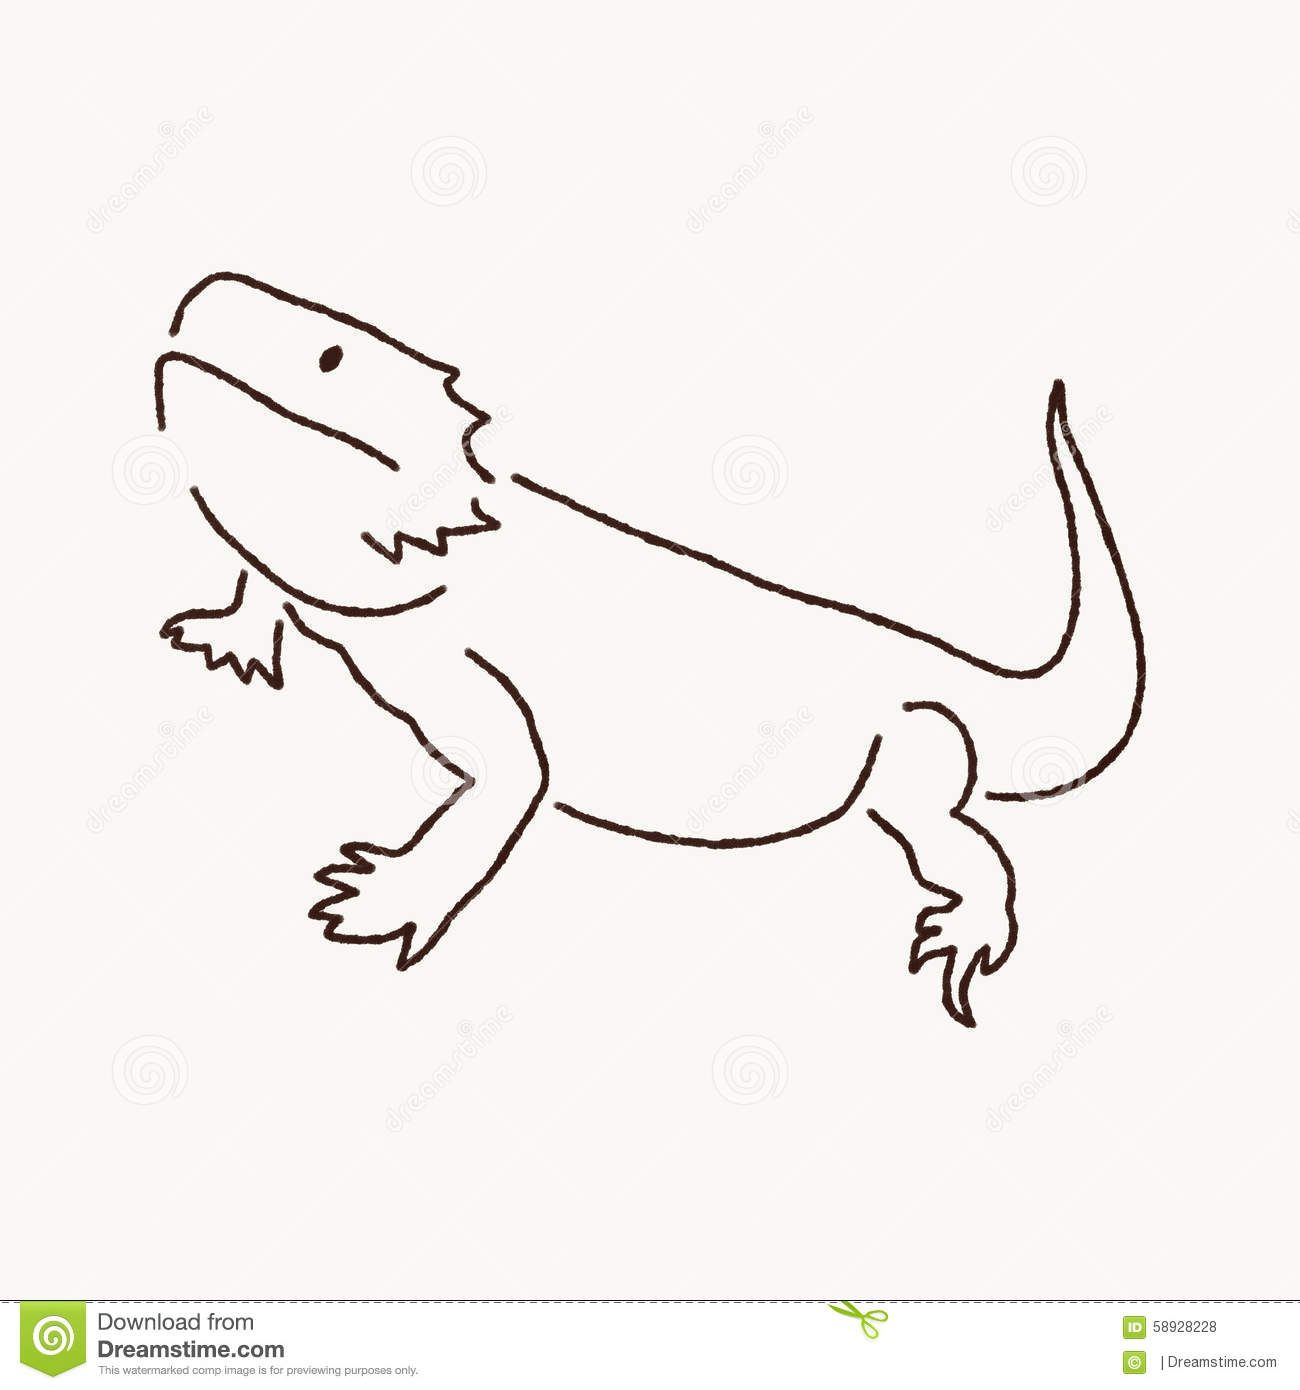 Library Of Bearded Dragon Picture Transparent Download Black And